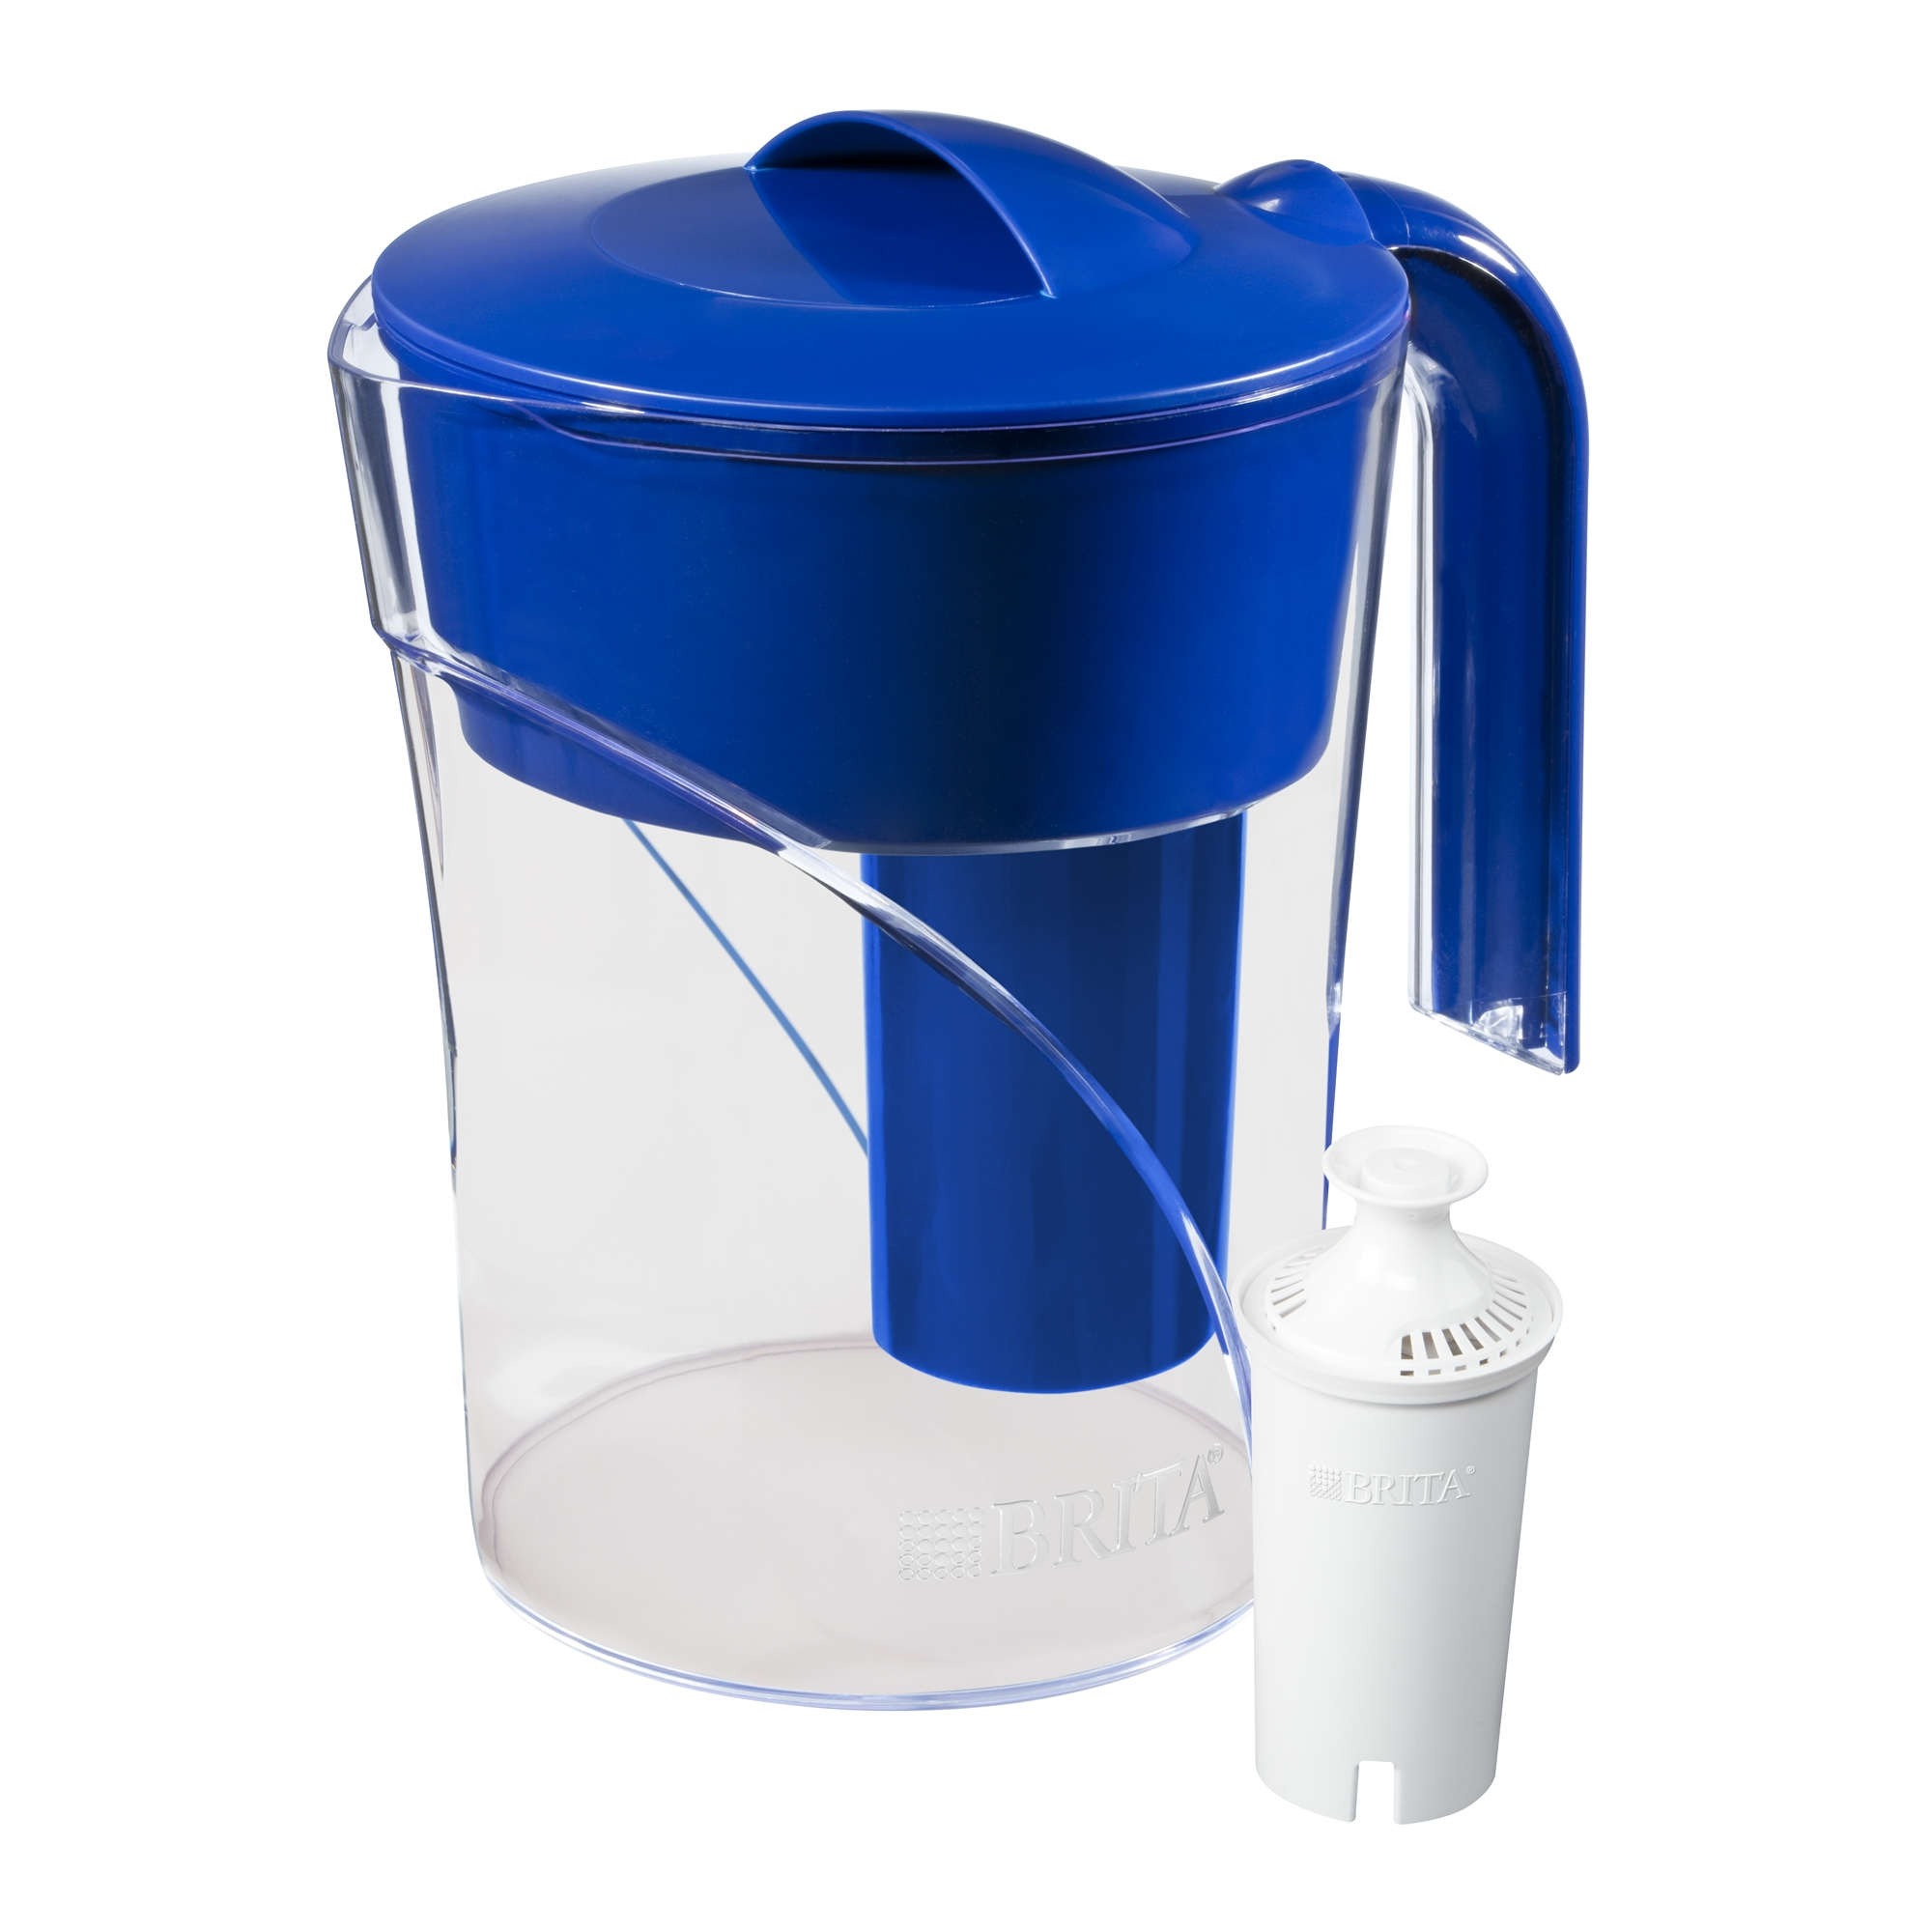 Brita Small 6 Cup Water Filter Pitcher with 1 Standard Filter, BPA Free Mist, Blue by The Clorox Company